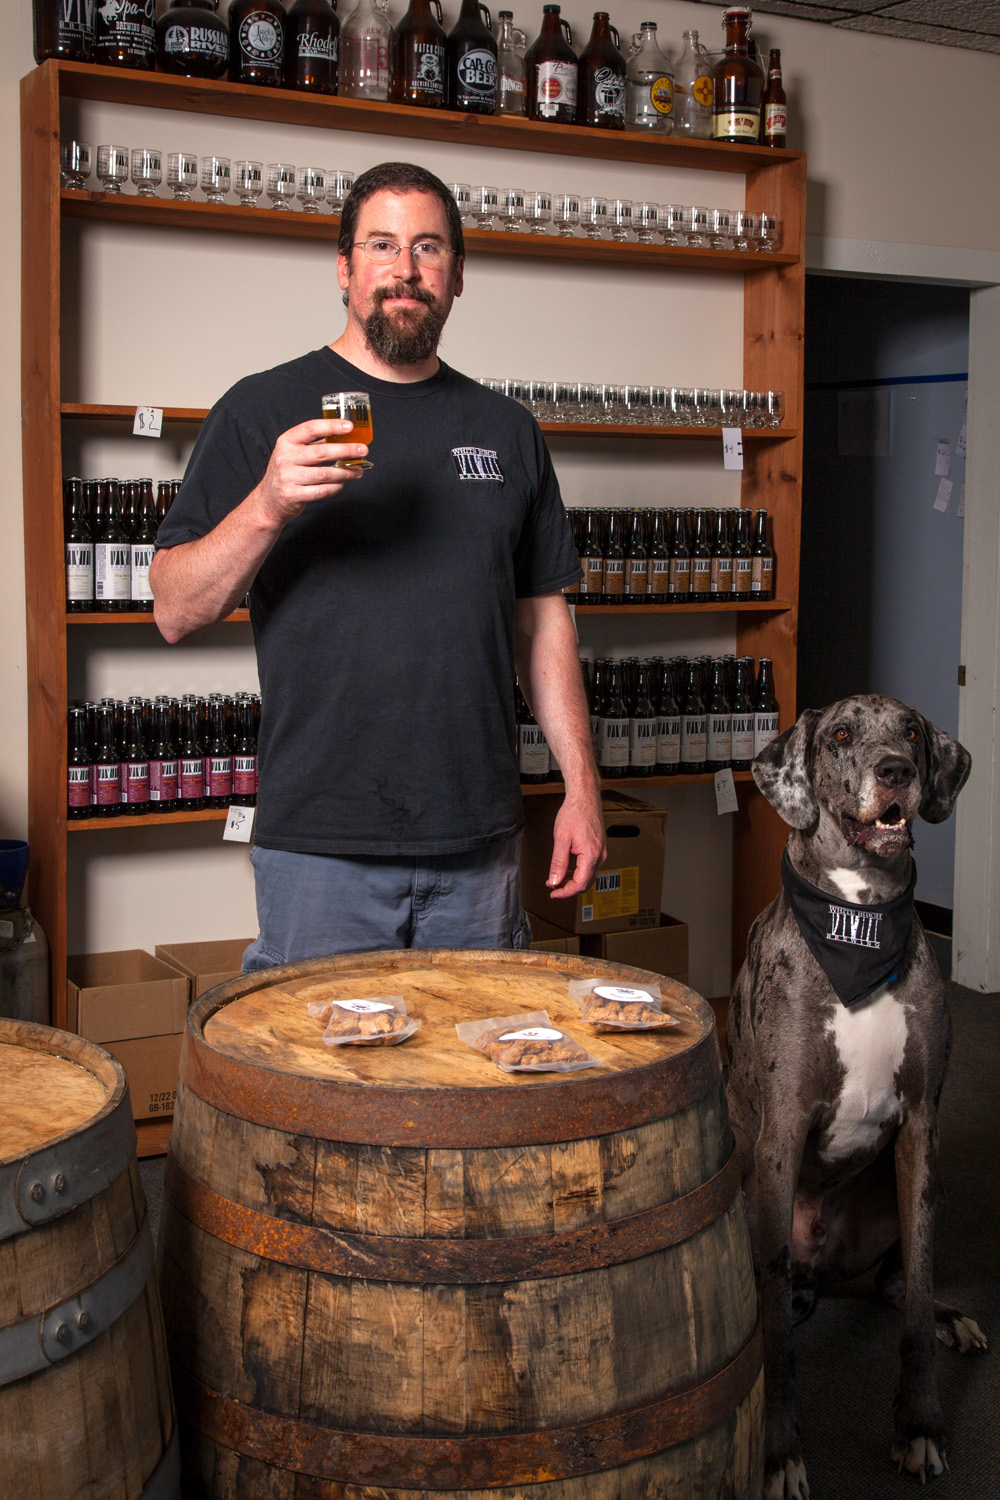 Bill Herlicka, Brewmaster at White Birch Brewing Hookset, NH Established in 2009